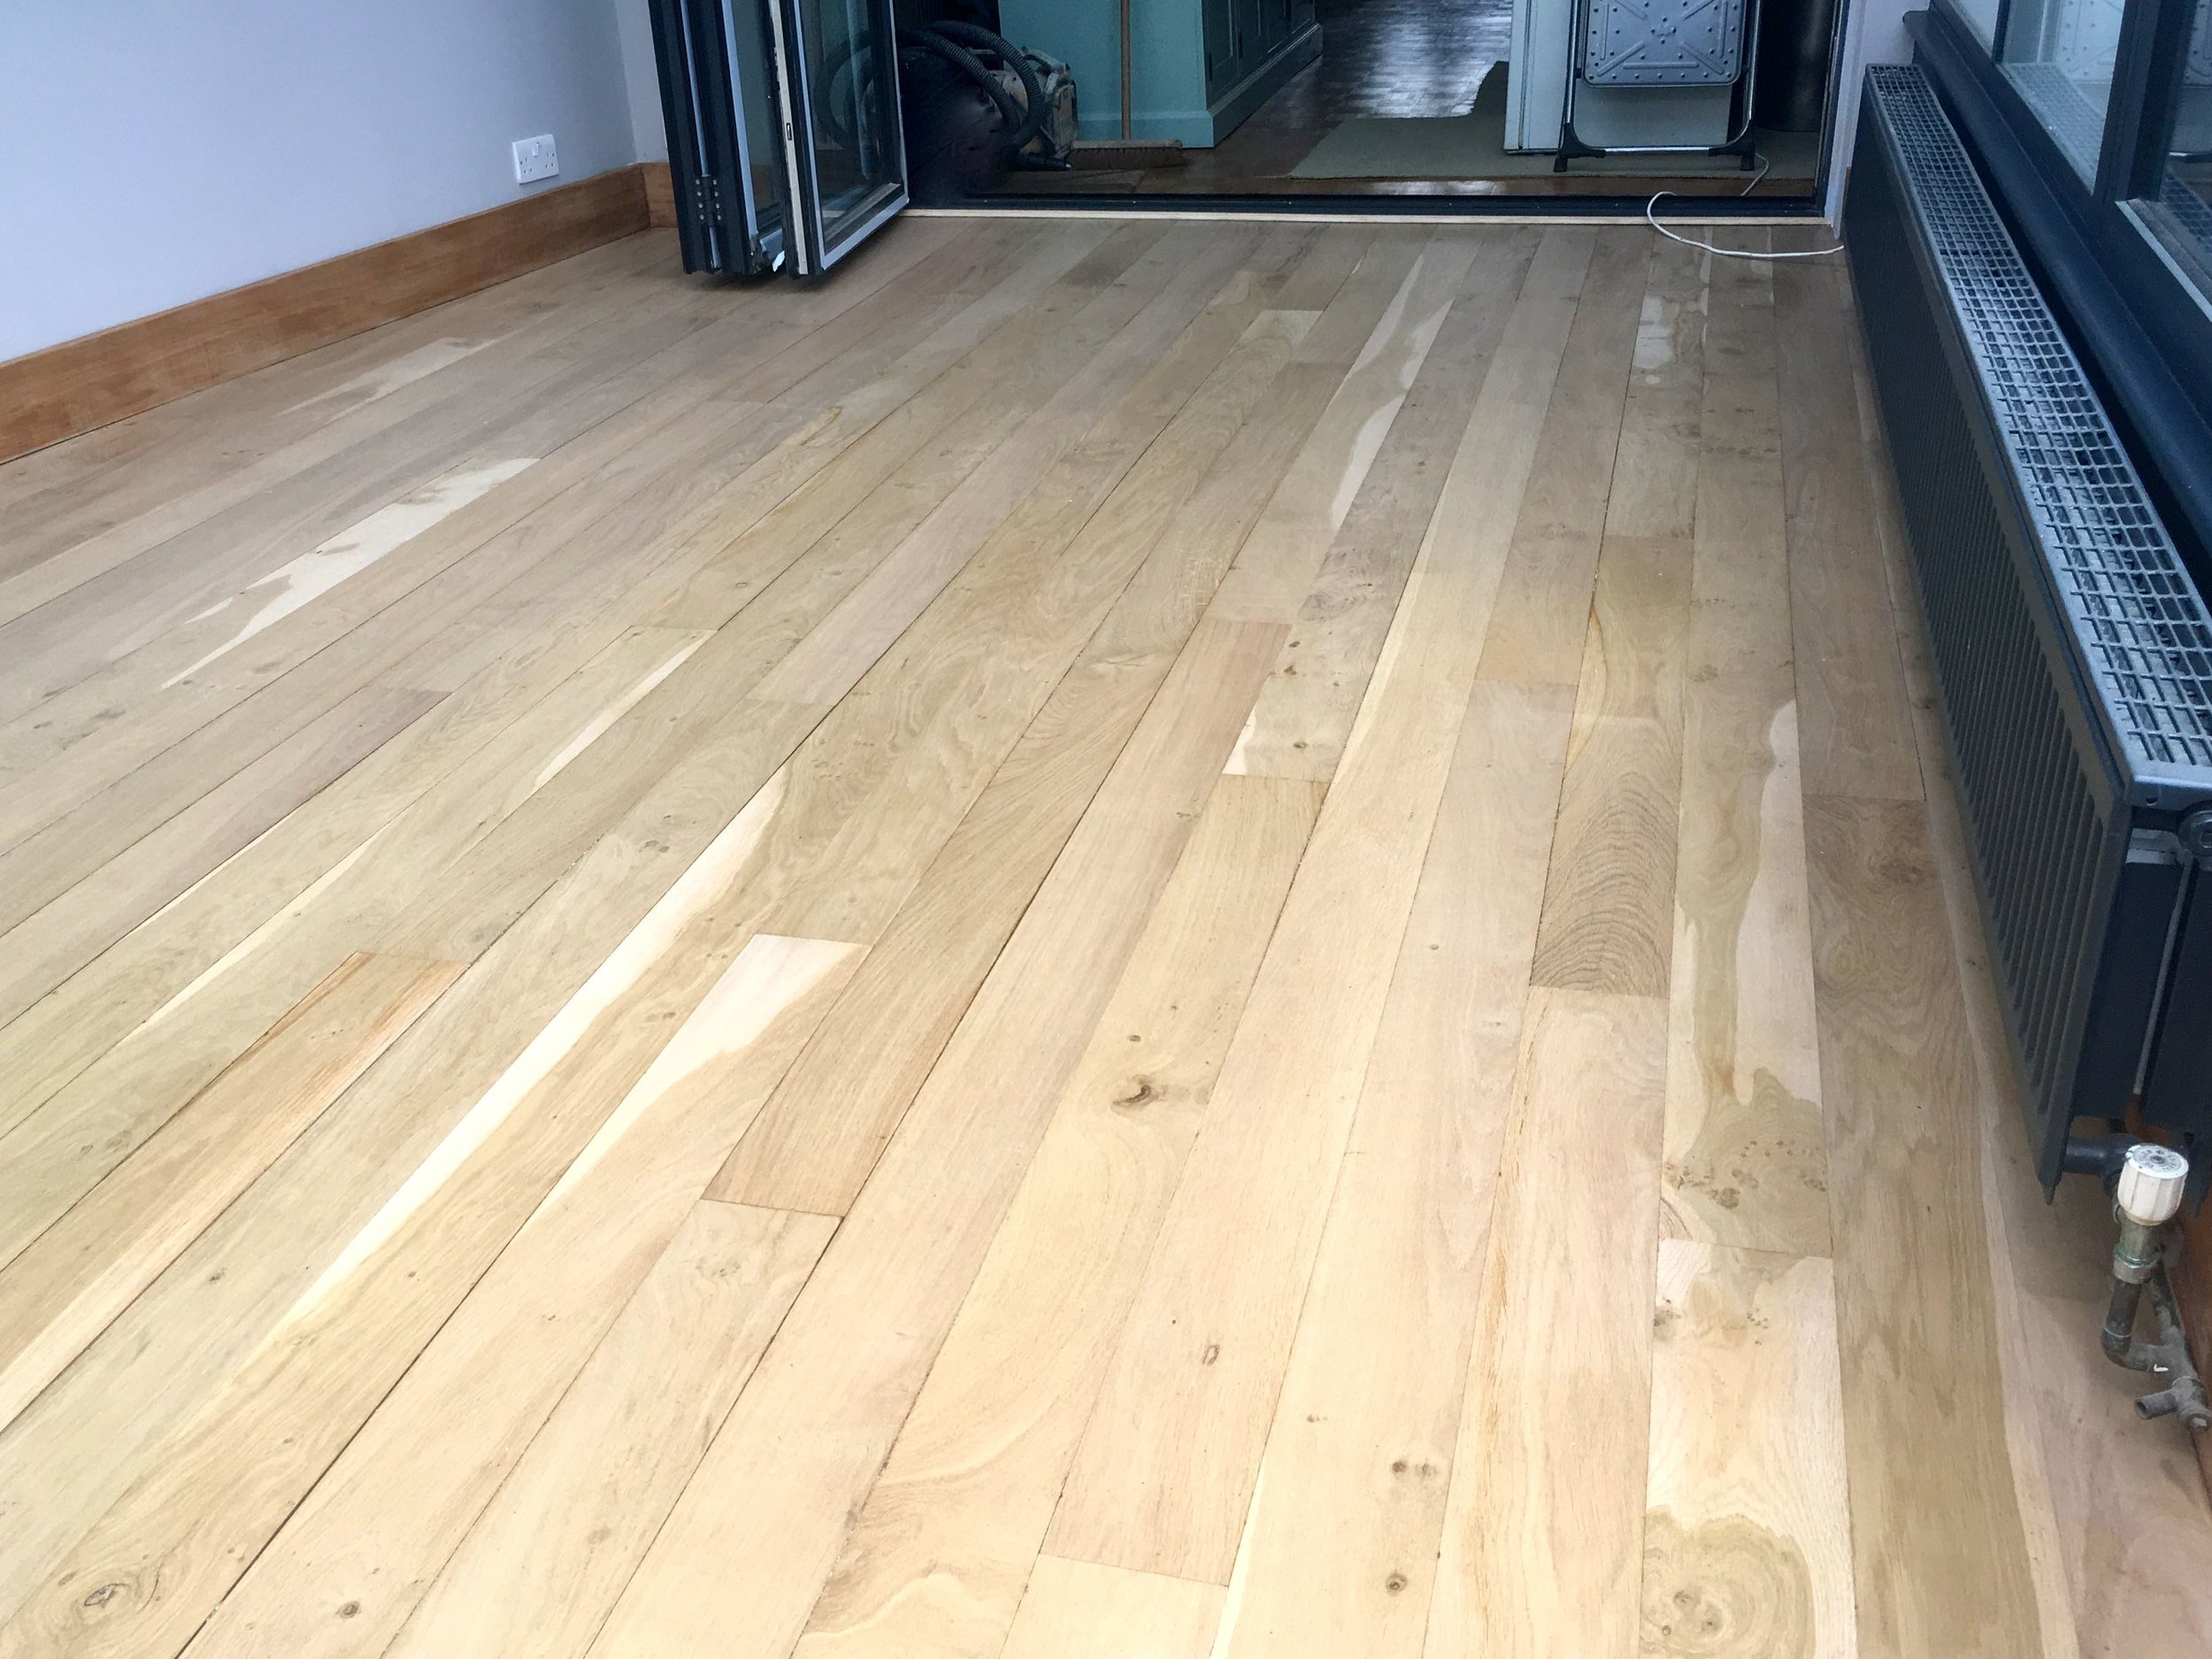 A newly sanded and varnished floor